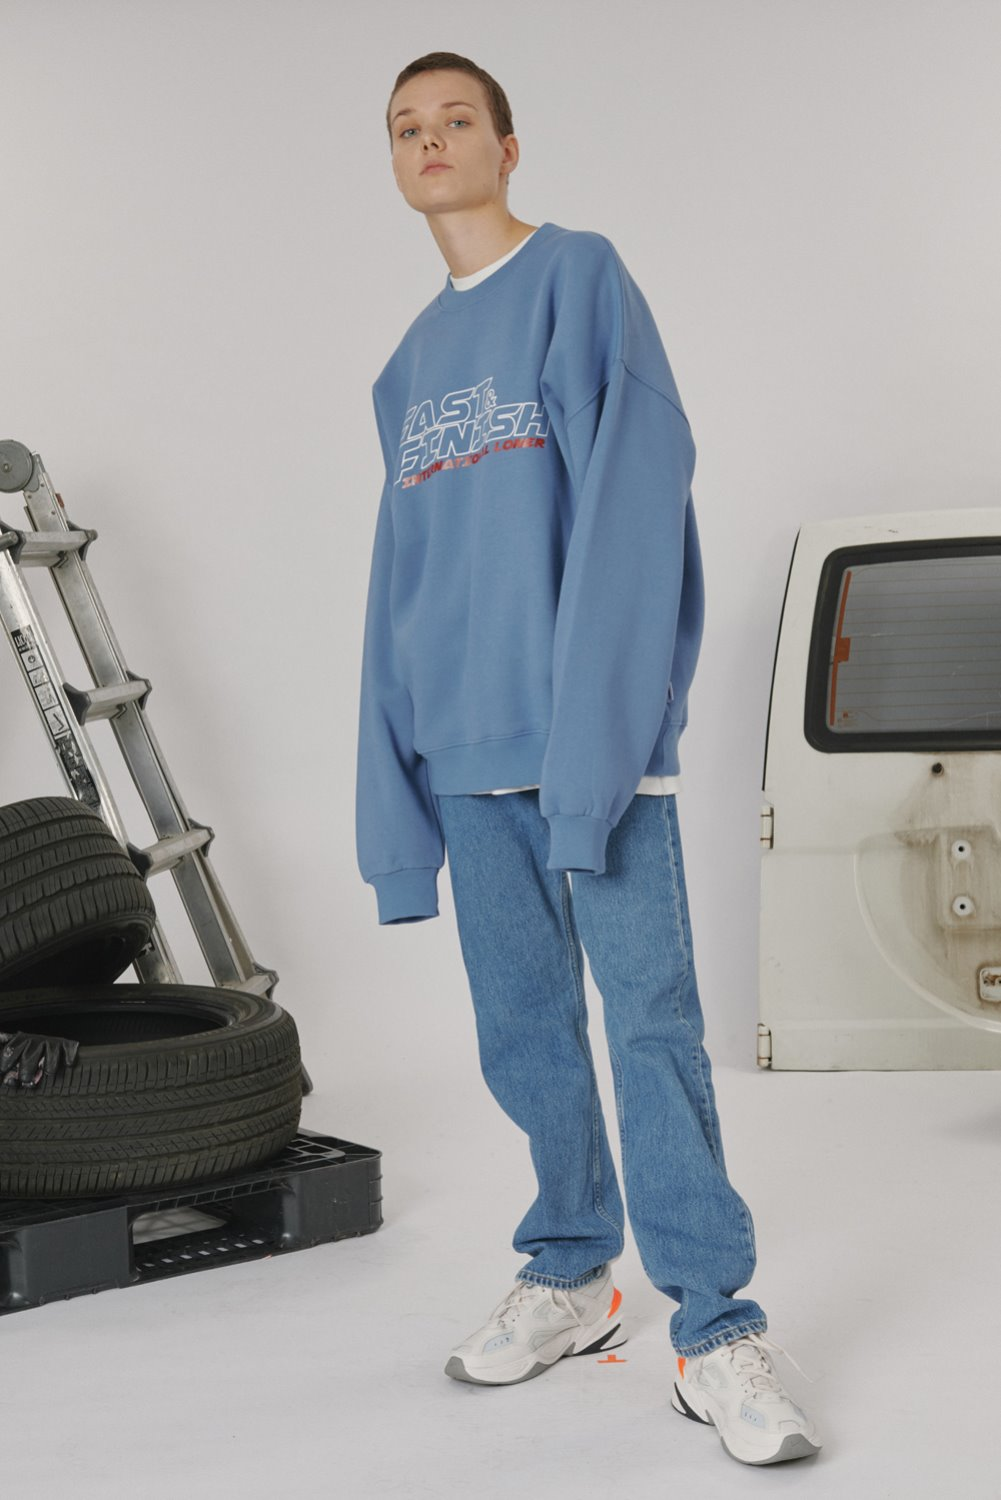 [가을맞이 세일] Fast and finish sweatshirt - Light blue (기간한정 9.06 - 9.19)